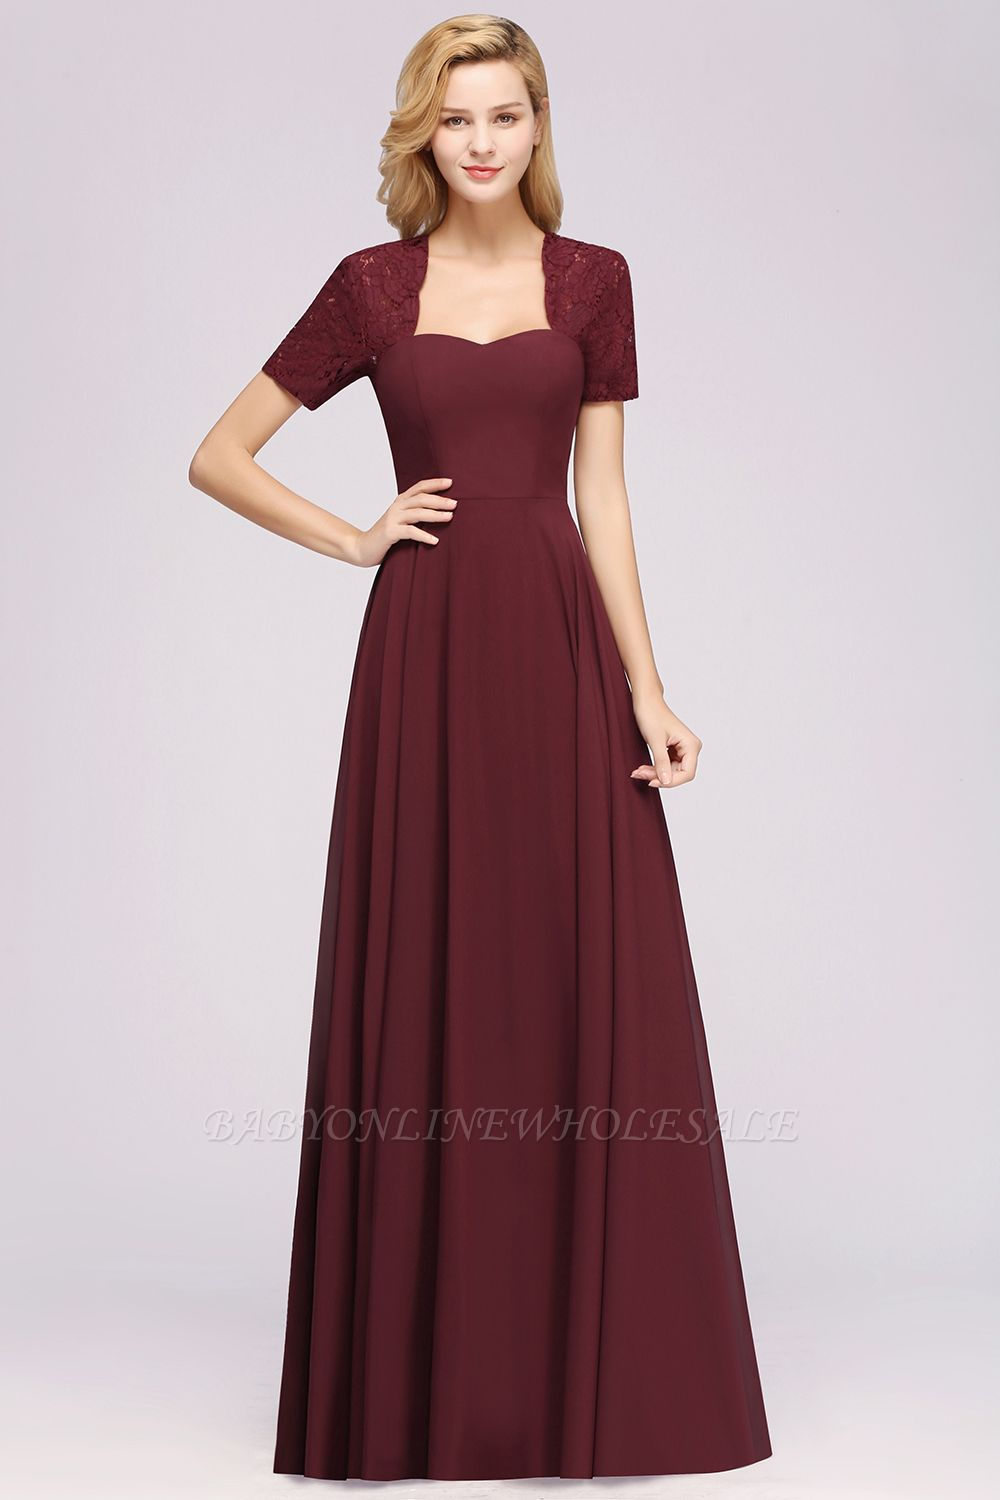 A-Line Chiffon Square Short Sleeves Bridesmaid Dress with Ruffle